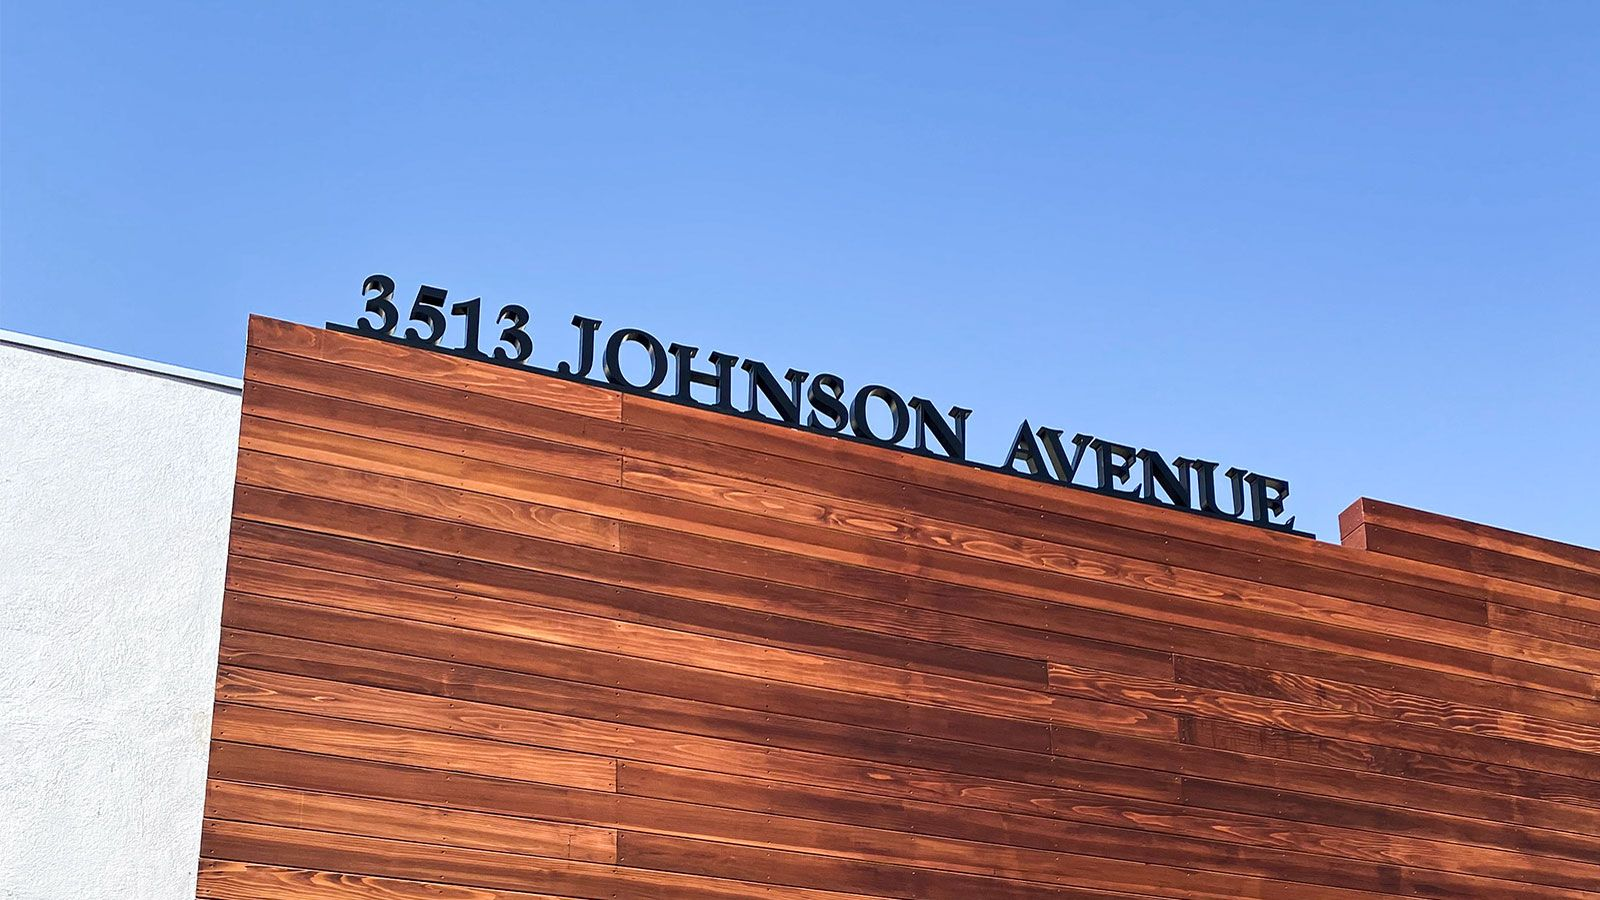 Johnson Avenue 3d acrylic letters and numbers in a large size on the rooftop for displaying the business address